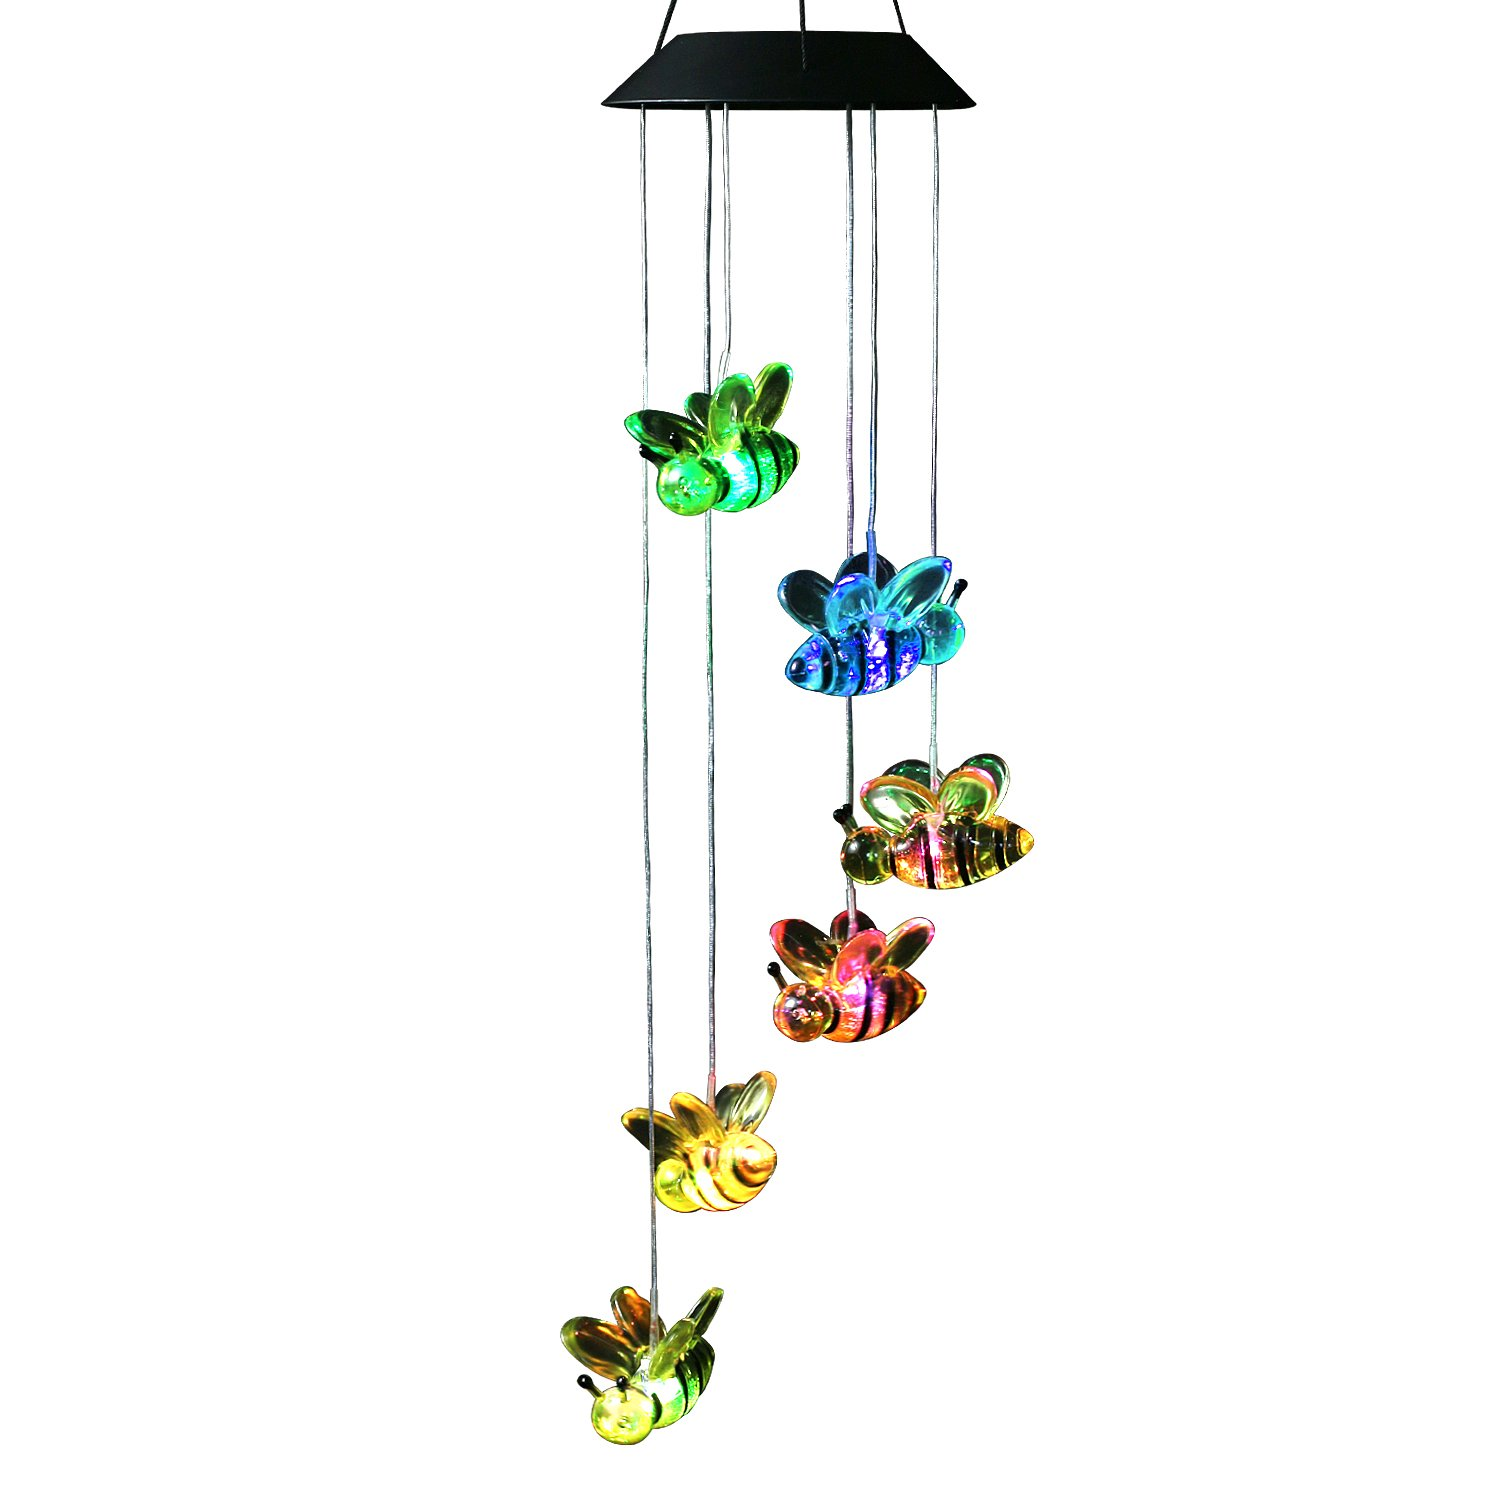 Changing Color Bee Solar Powered Mobile, Anzome Spiral Spinner Windchime Wind Chime Outdoor Decorative Windbell Light for Patio, Deck, Yard, Garden, Home, Pathway